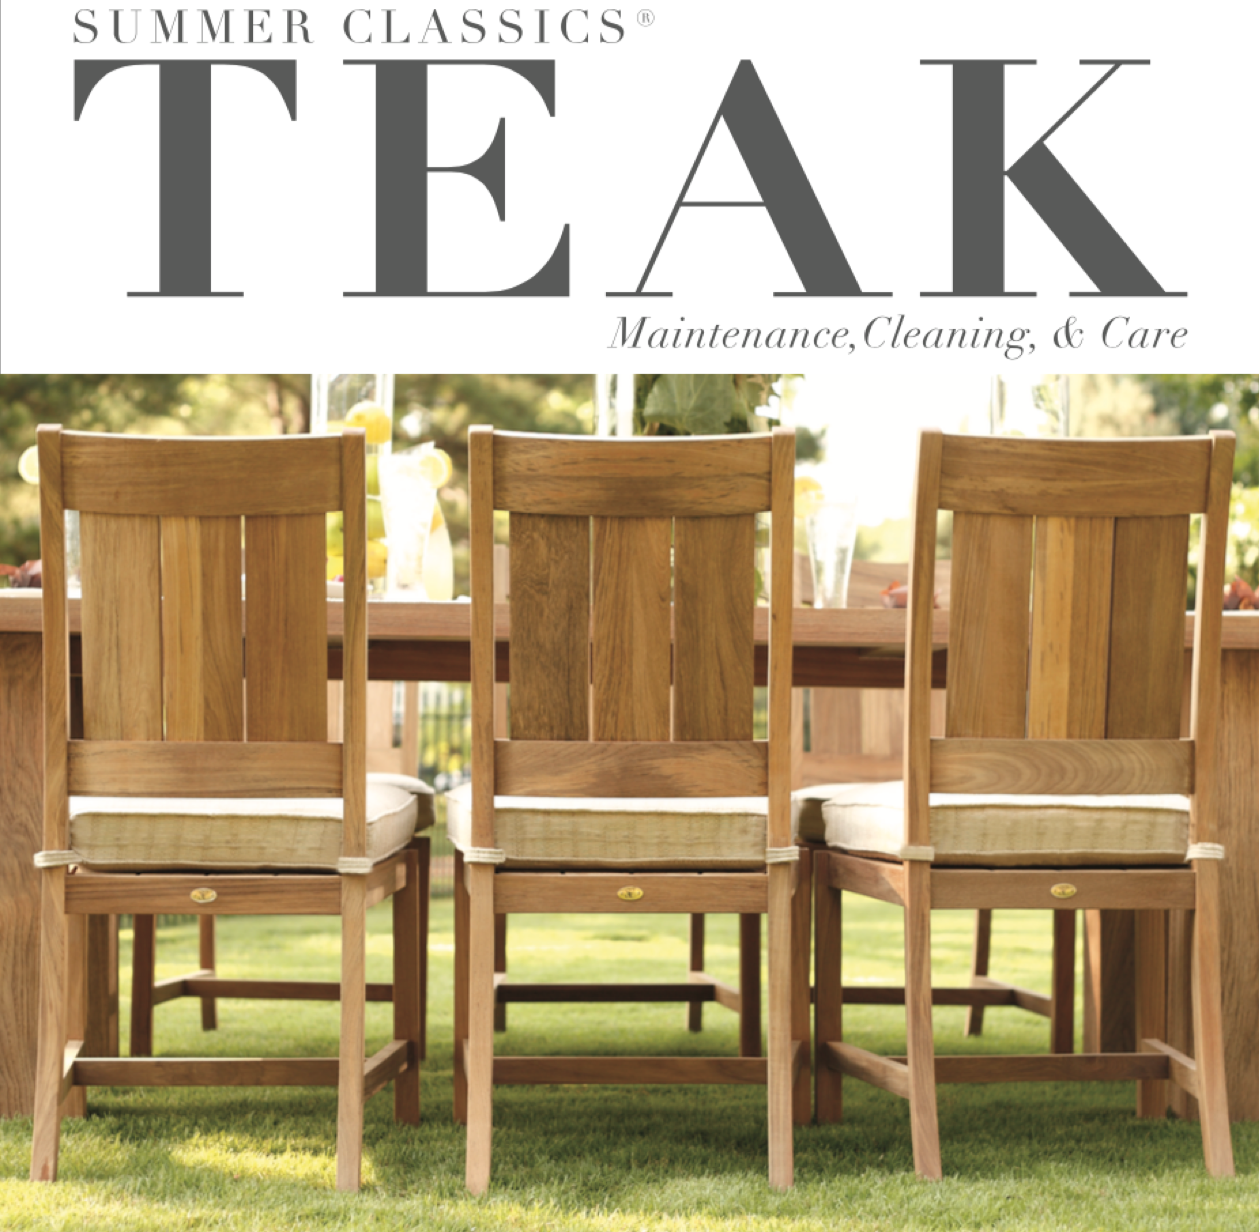 Teak Tweak Maintaining And Cleaning Teak Furniture